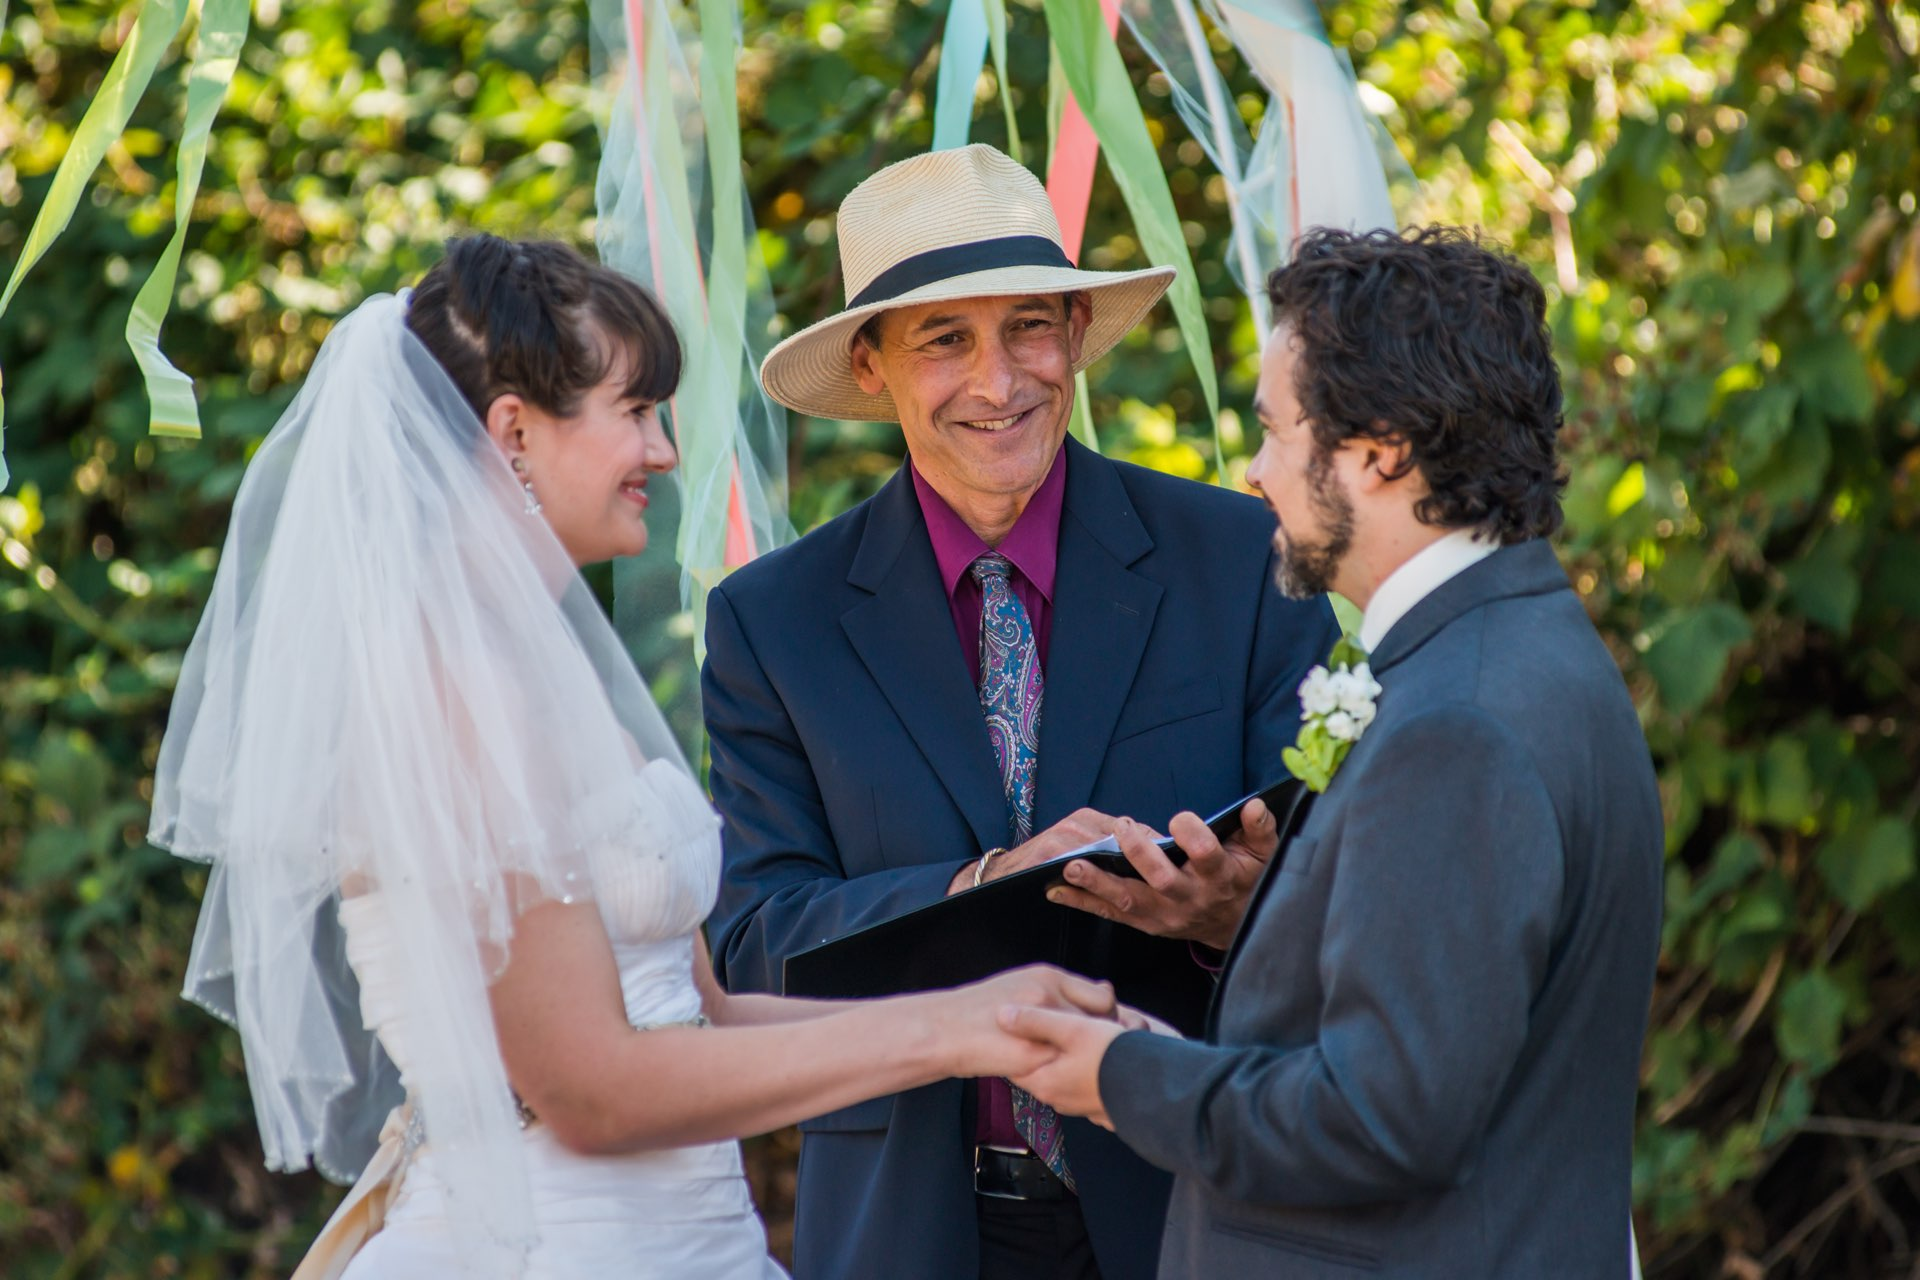 Didier Gincig, Wedding Officiant and Wedding Planner